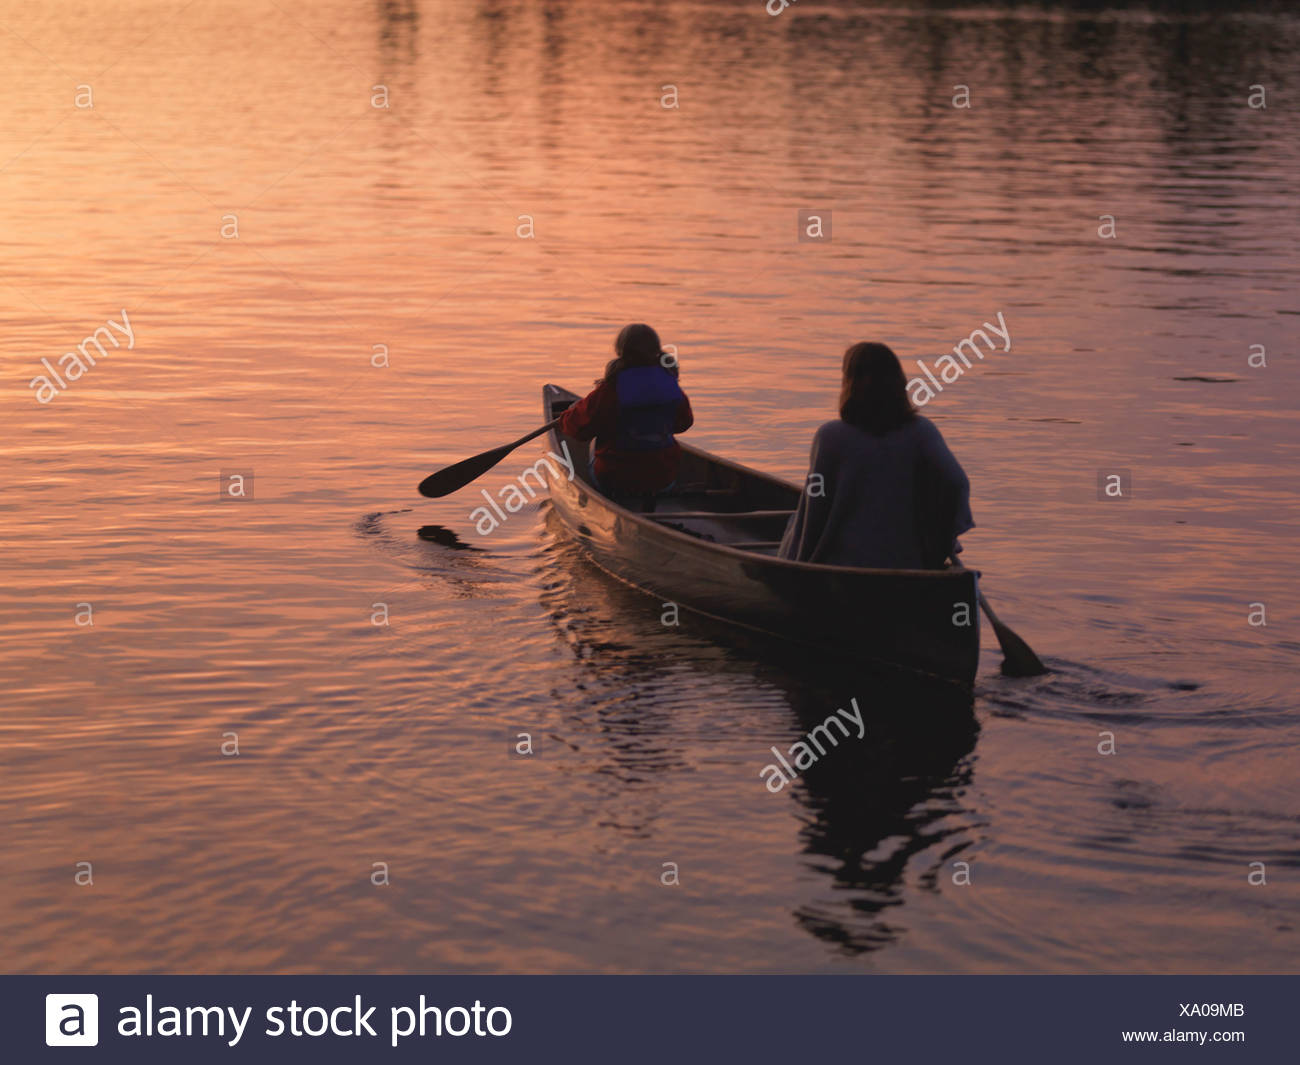 Two people in a canoe, Lake of the Woods, Ontario, Canada - Stock Image